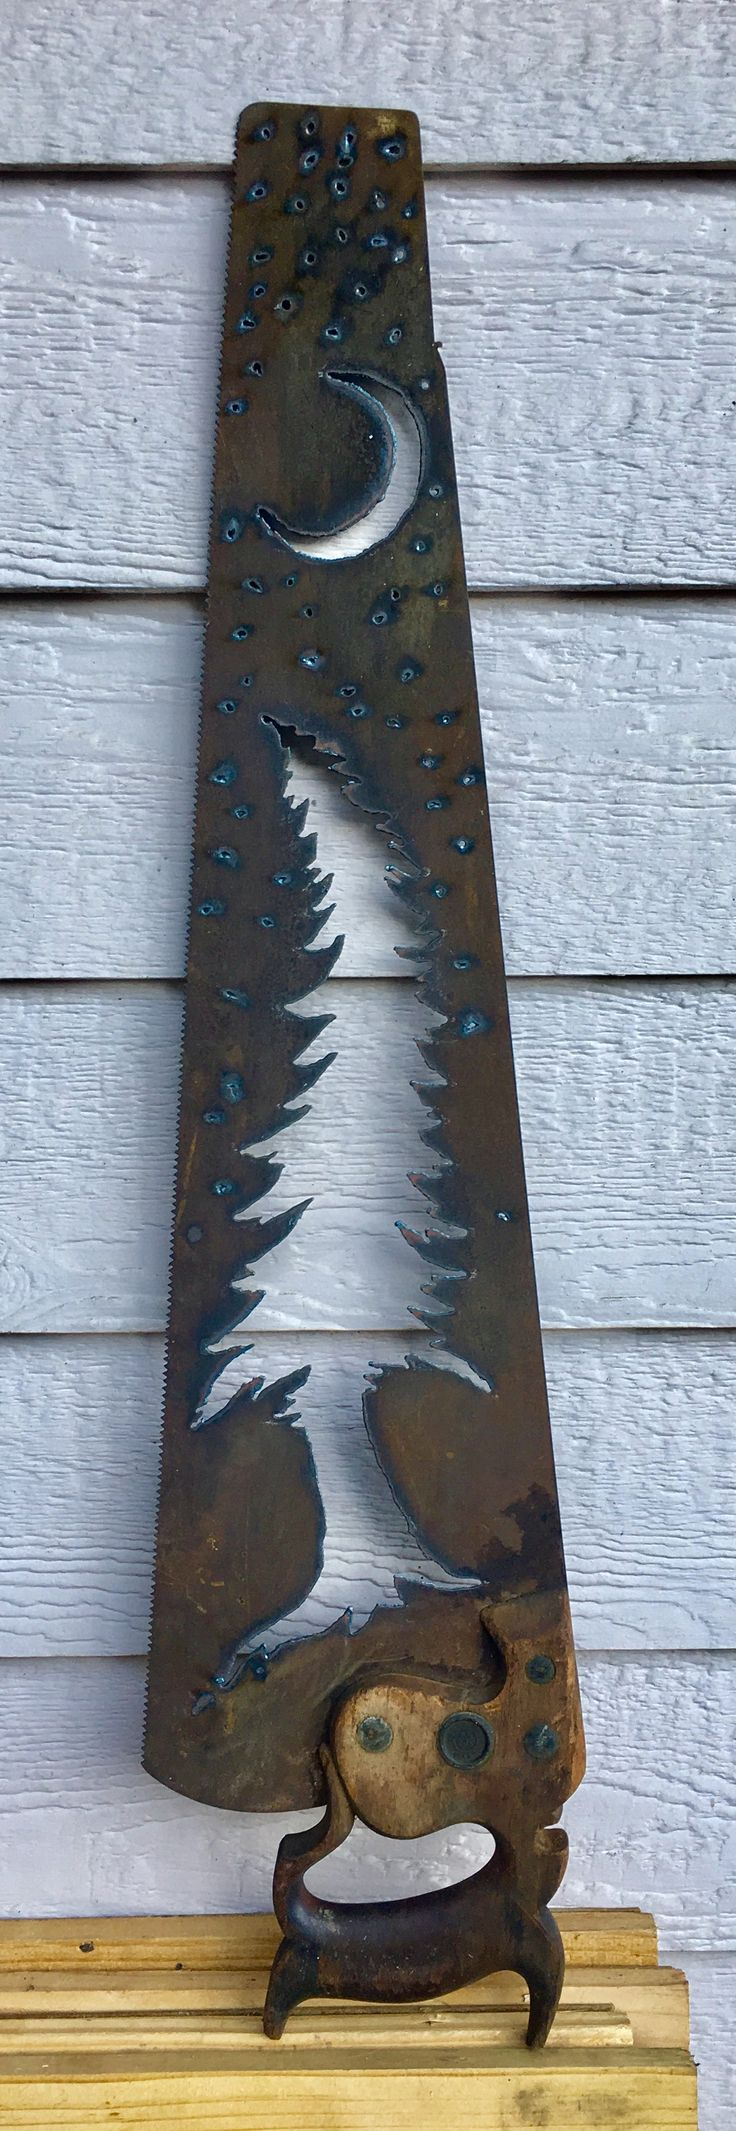 Old hand saw cut with plasma cutter.  Nighttime tree scene in negative. Commissioned piece.  Made by Roshi